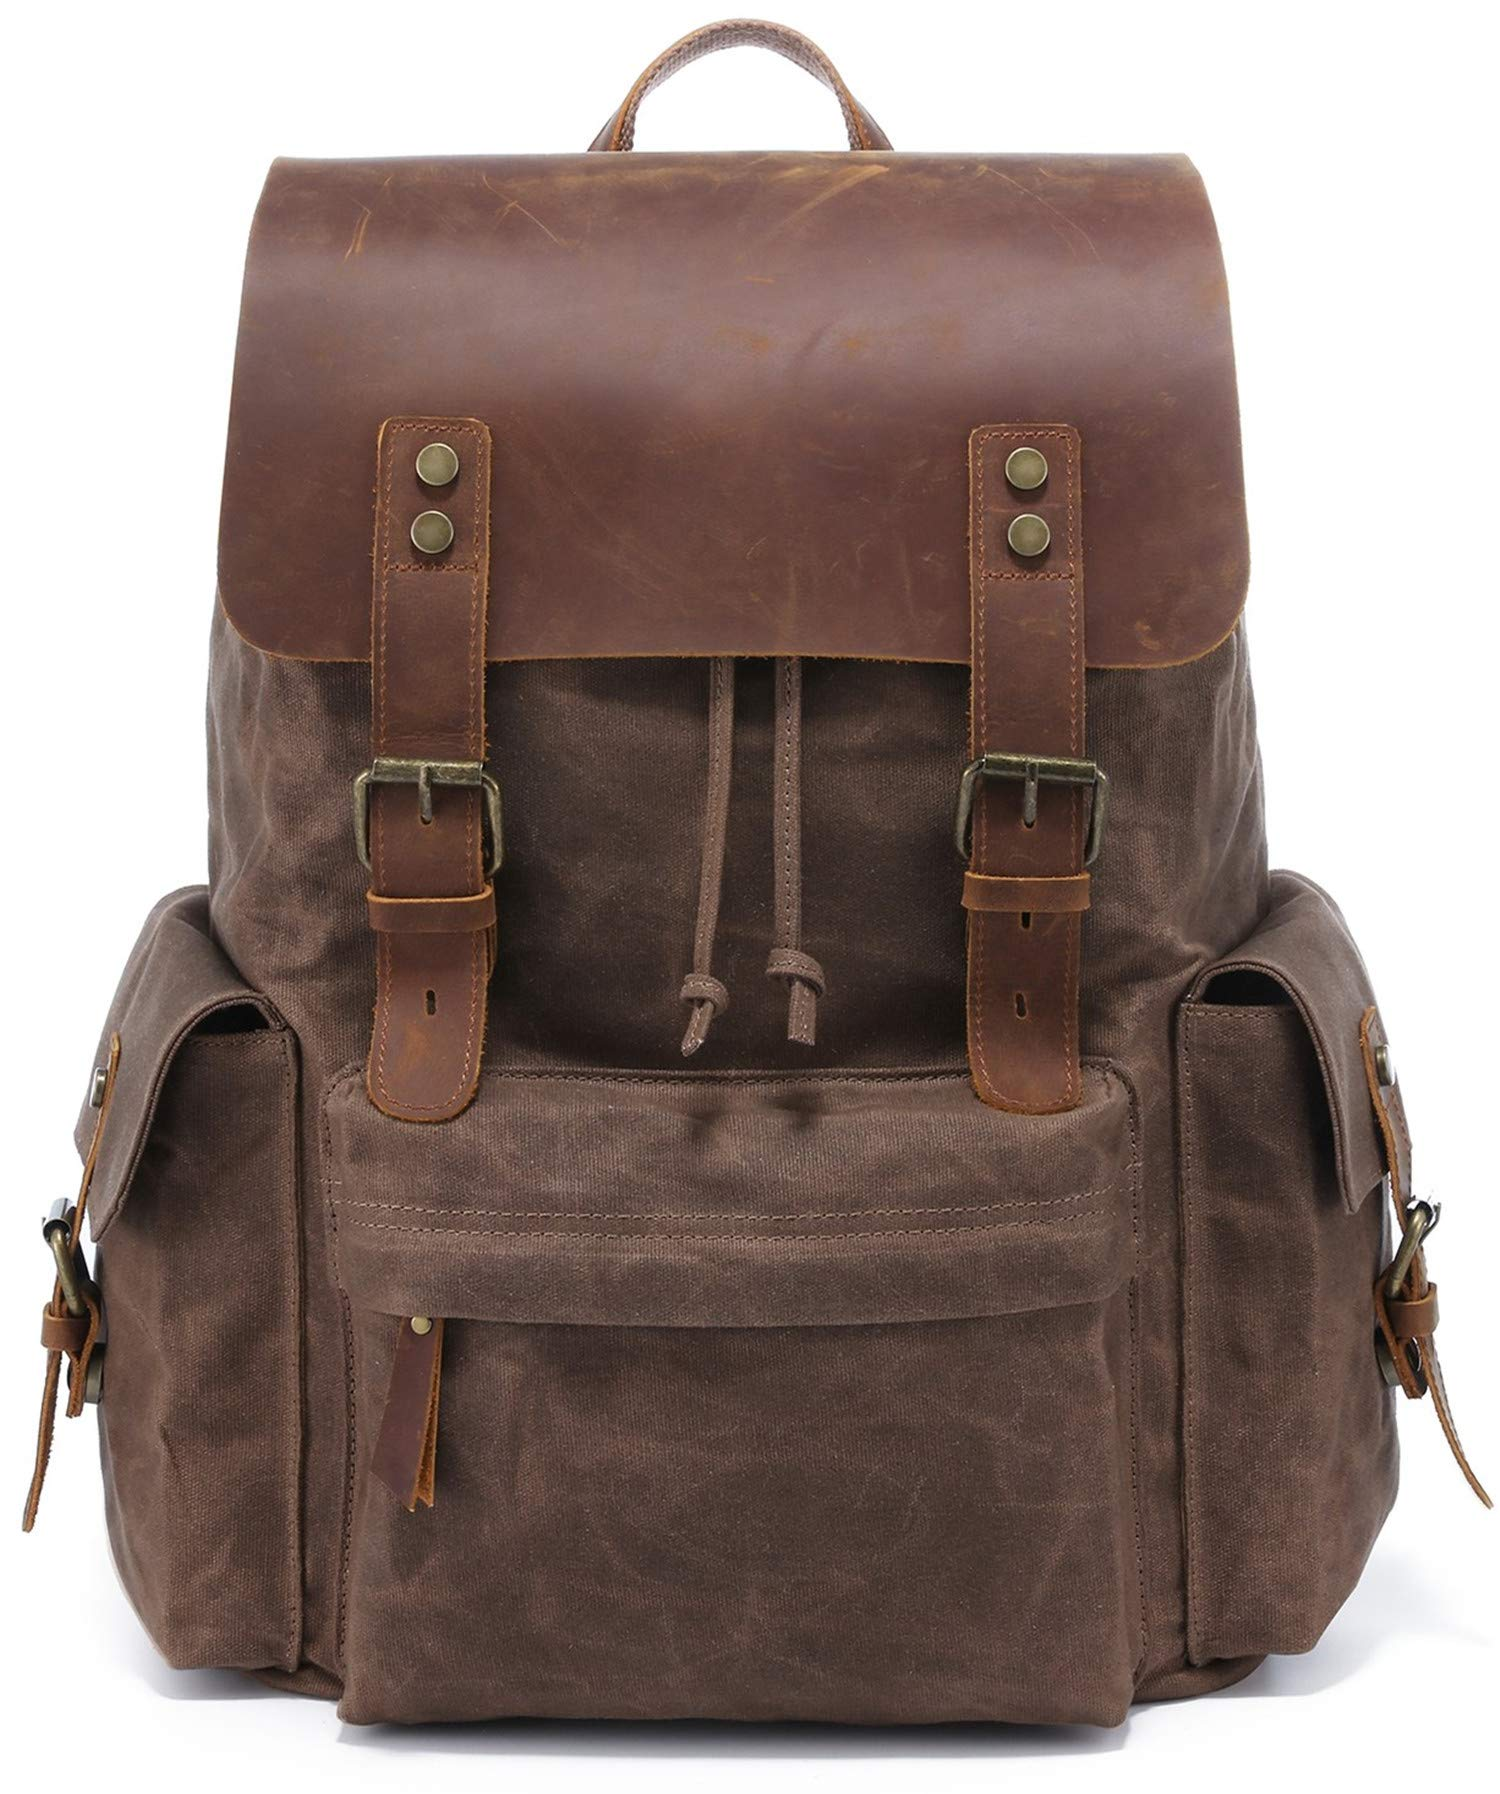 2019 New Model vintage waxed canvas backpack 15.6 Inch Laptop leather waterproof Bag Rucksack men computer Backpack for Men,Business Leisure Outdoor hiking travel backpack(Coffee) by MUMAIS